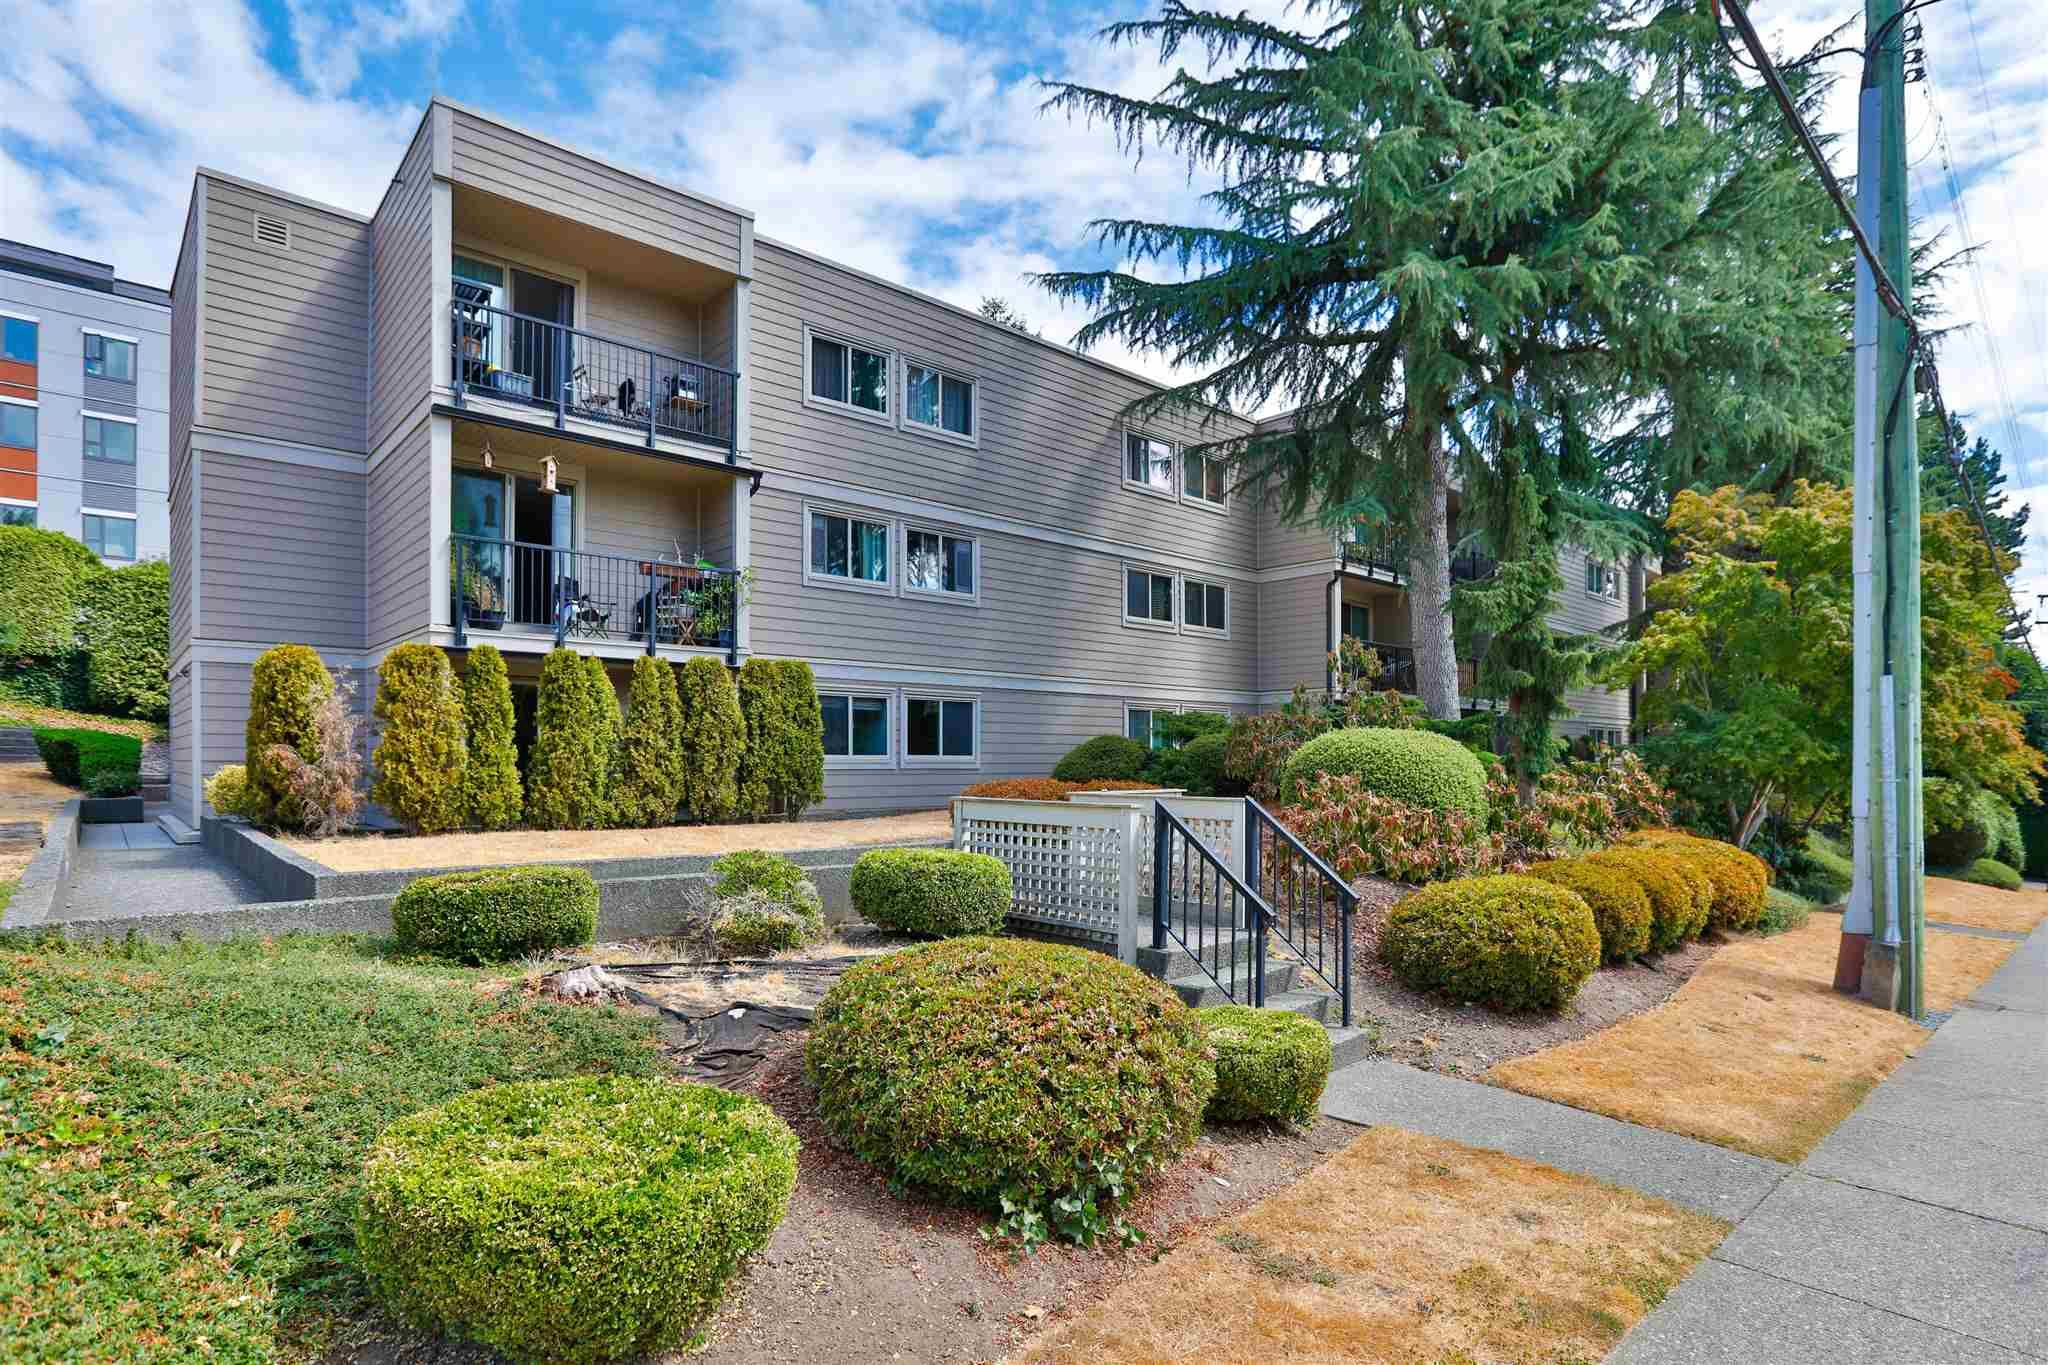 Main Photo: 102 1121 HOWIE Avenue in Coquitlam: Central Coquitlam Condo for sale : MLS®# R2604822